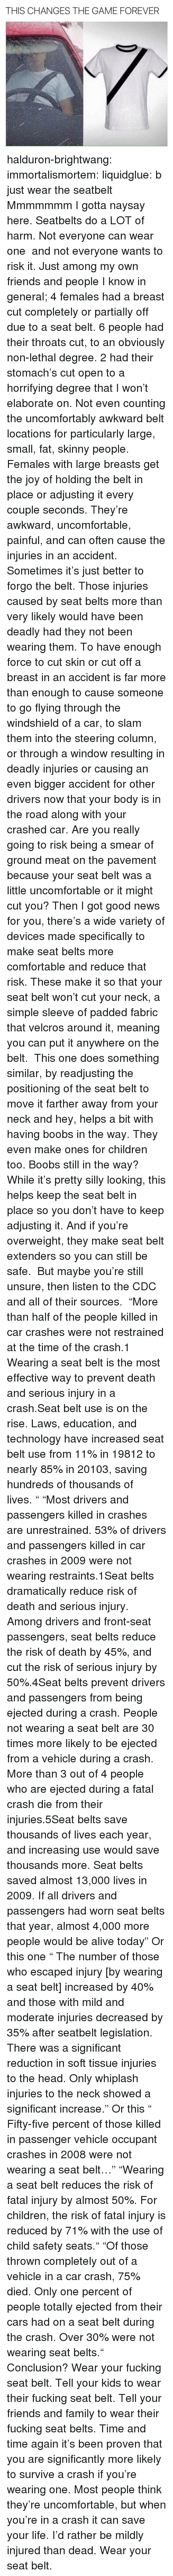 Uncomfortably: THIS CHANGES THE GAME FOREVER halduron-brightwang:  immortalismortem:  liquidglue:   b just wear the seatbelt   Mmmmmmm I gotta naysay here. Seatbelts do a LOT of harm. Not everyone can wear one and not everyone wants to risk it. Just among my own friends and people I know in general; 4 females had a breast cut completely or partially off due to a seat belt. 6 people had their throats cut, to an obviously non-lethal degree. 2 had their stomach's cut open to a horrifying degree that I won't elaborate on. Not even counting the uncomfortably awkward belt locations for particularly large, small, fat, skinny people. Females with large breasts get the joy of holding the belt in place or adjusting it every couple seconds. They're awkward, uncomfortable, painful, and can often cause the injuries in an accident. Sometimes it's just better to forgo the belt.  Those injuries caused by seat belts more than very likely would have been deadly had they not been wearing them. To have enough force to cut skin or cut off a breast in an accident is far more than enough to cause someone to go flying through the windshield of a car, to slam them into the steering column, or through a window resulting in deadly injuries or causing an even bigger accident for other drivers now that your body is in the road along with your crashed car. Are you really going to risk being a smear of ground meat on the pavement because your seat belt was a little uncomfortable or it might cut you? Then I got good news for you, there's a wide variety of devices made specifically to make seat belts more comfortable and reduce that risk. These make it so that your seat belt won't cut your neck, a simple sleeve of padded fabric that velcros around it, meaning you can put it anywhere on the belt. This one does something similar, by readjusting the positioning of the seat belt to move it farther away from your neck and hey, helps a bit with having boobs in the way. They even make ones for children to